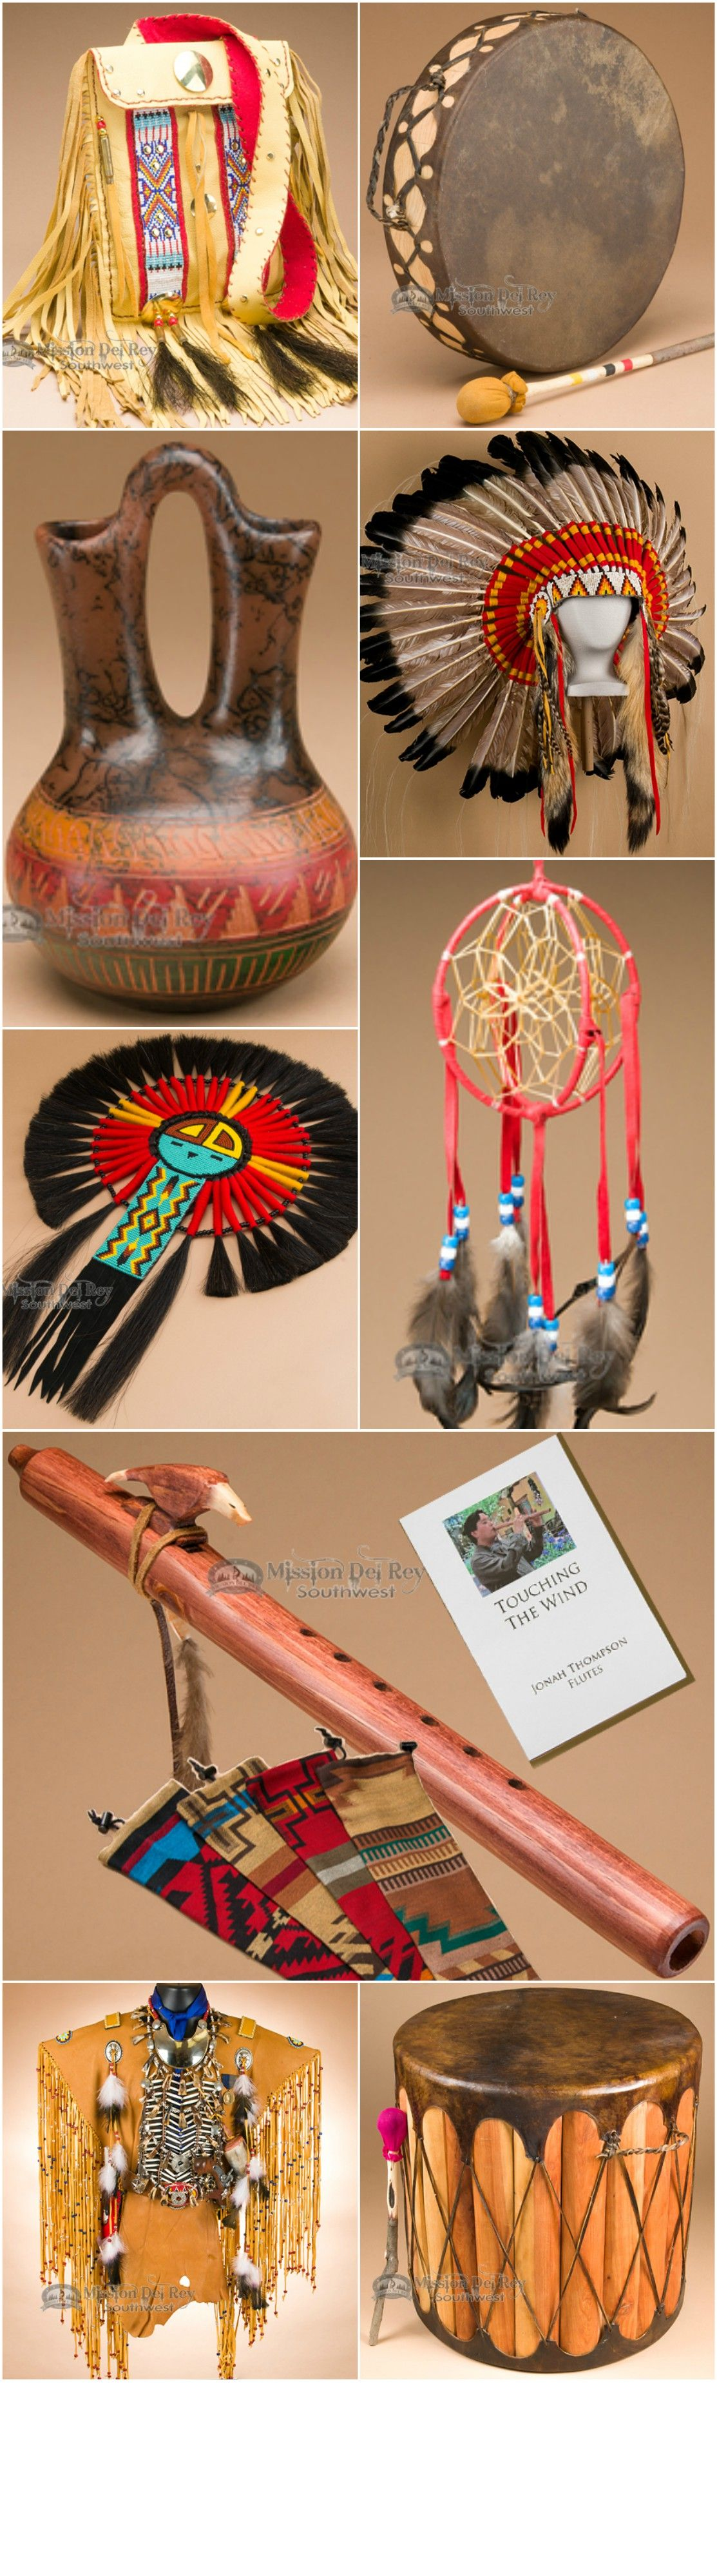 Native American Home Decor Native American Bows And Arrows Are Classic Cultural Icons That